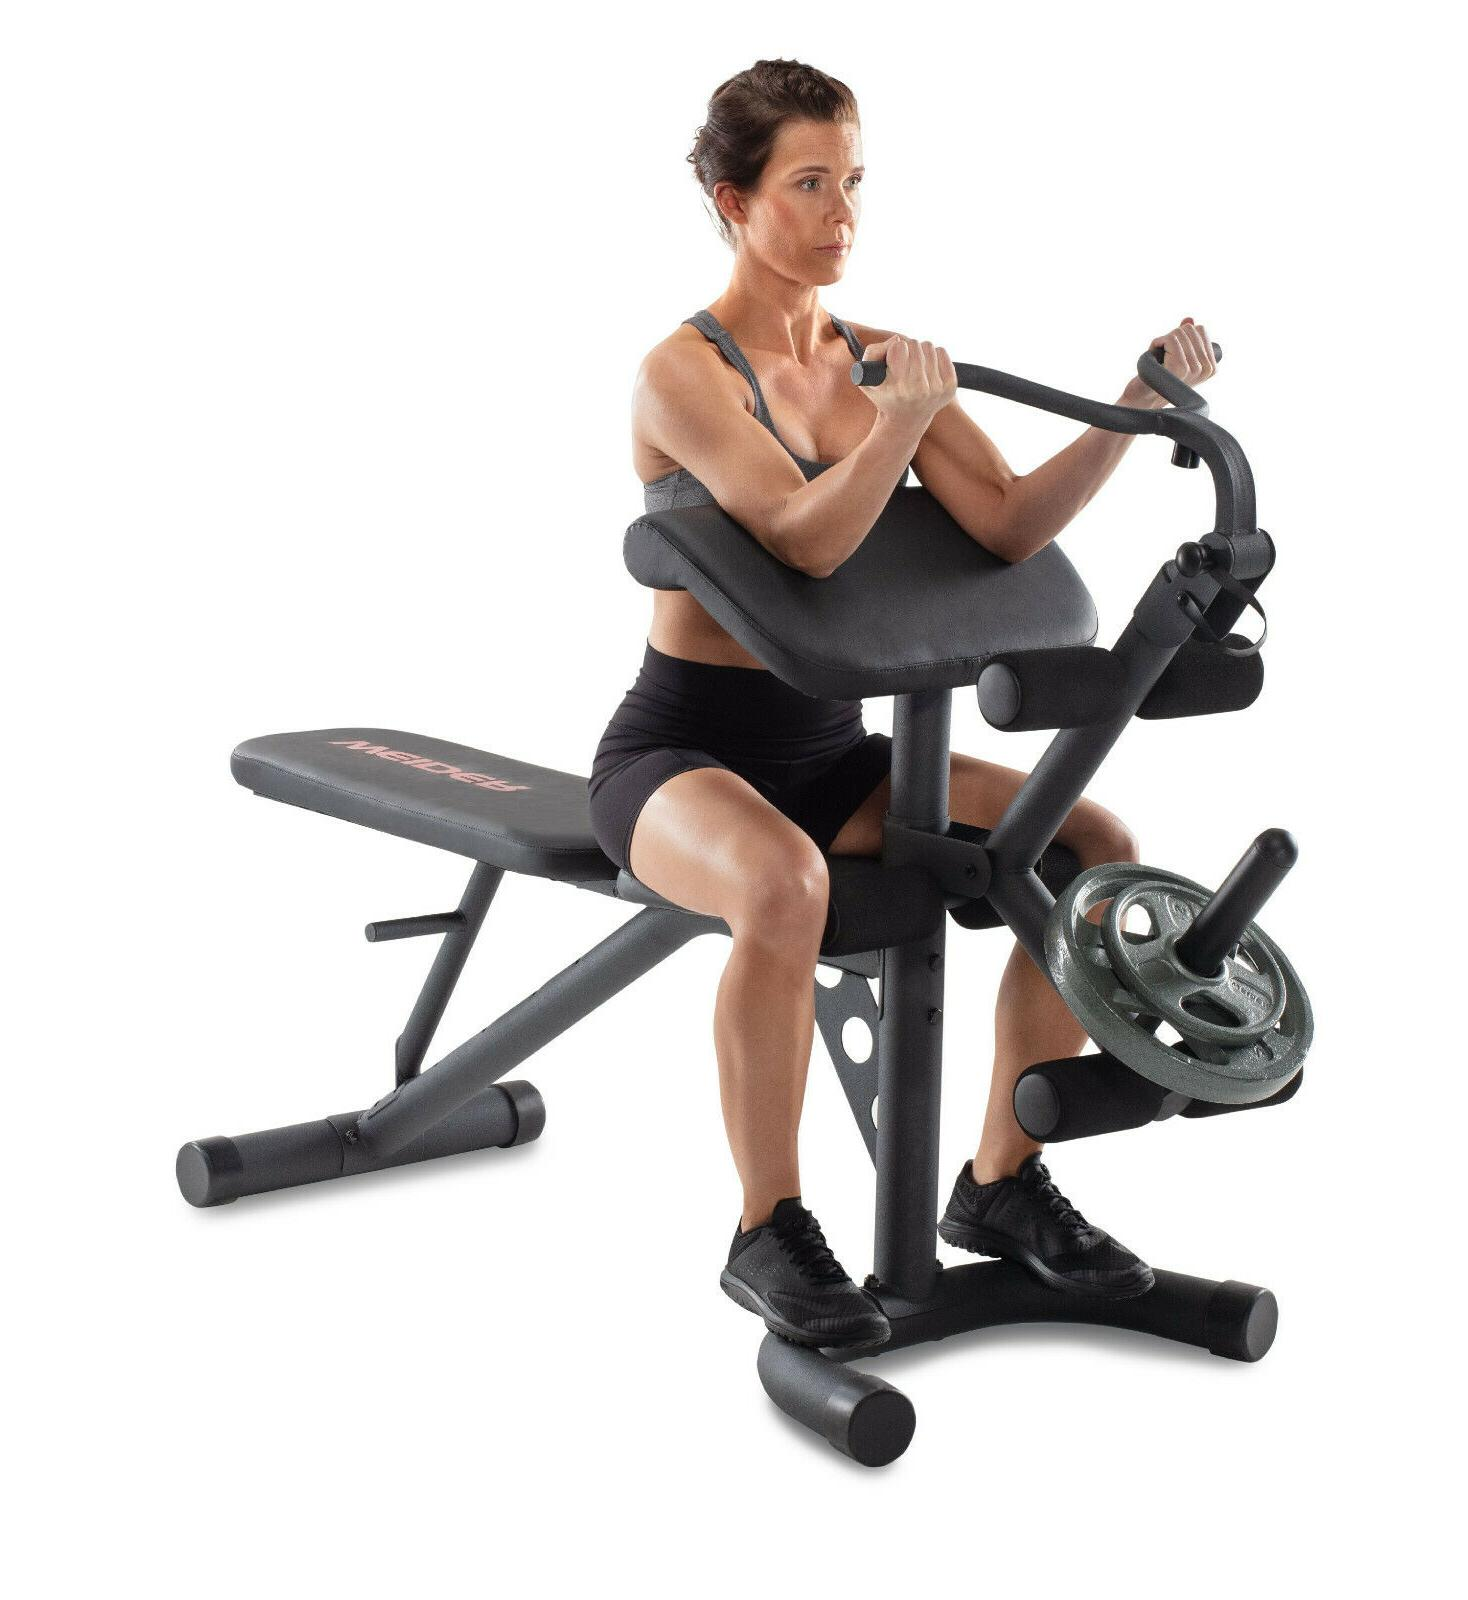 XRS 20 Olympic Workout Bench w/Removable Preacher Pad & Inte